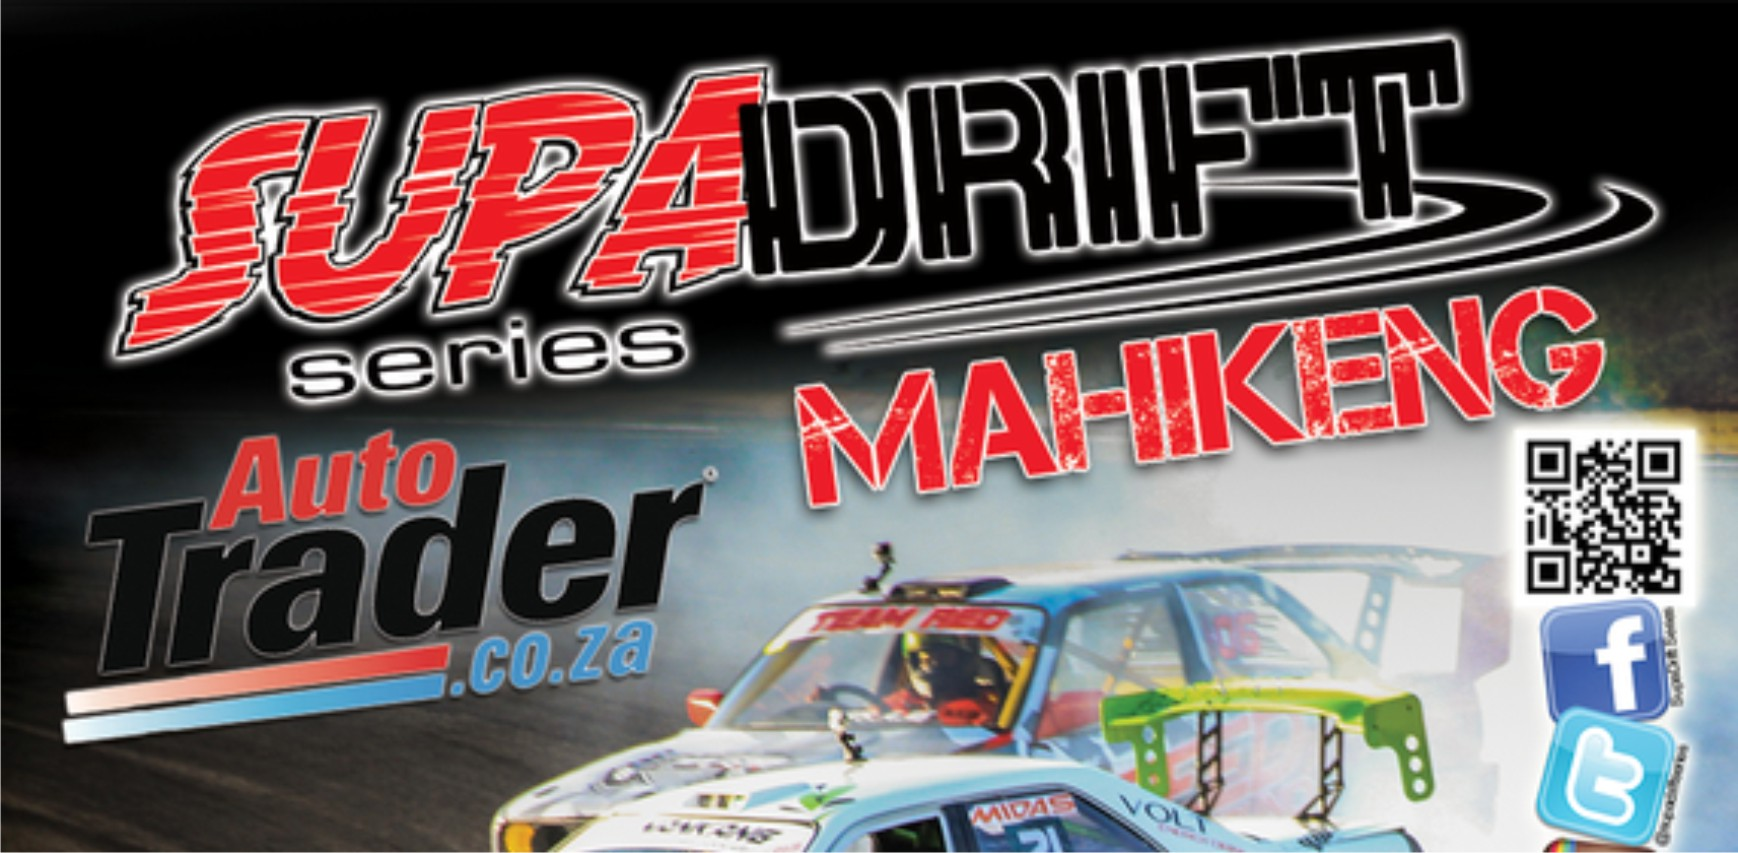 Supadrift Series 07 the penultimate round of 2014